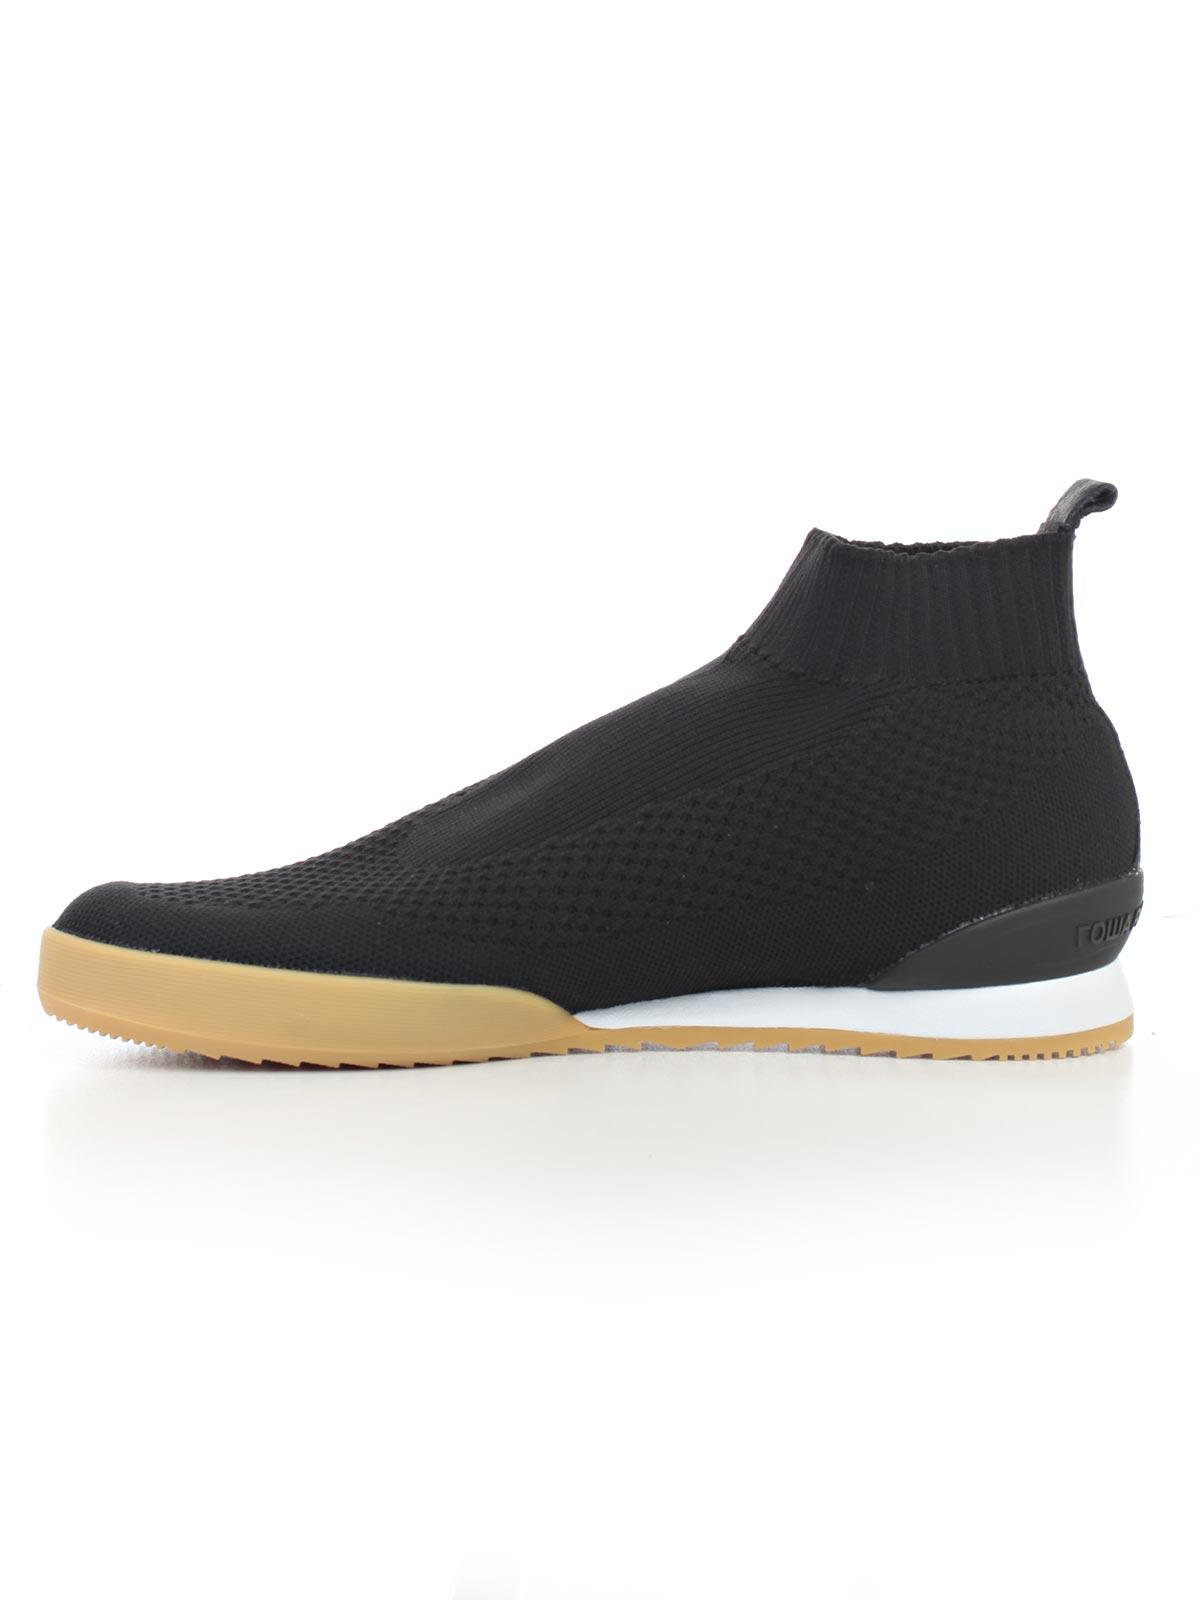 factory authentic 85289 8fd07 ... Gosha Rubchinskiy Scarpa X Adidas Ace 16+ Sneakers Lyst ...